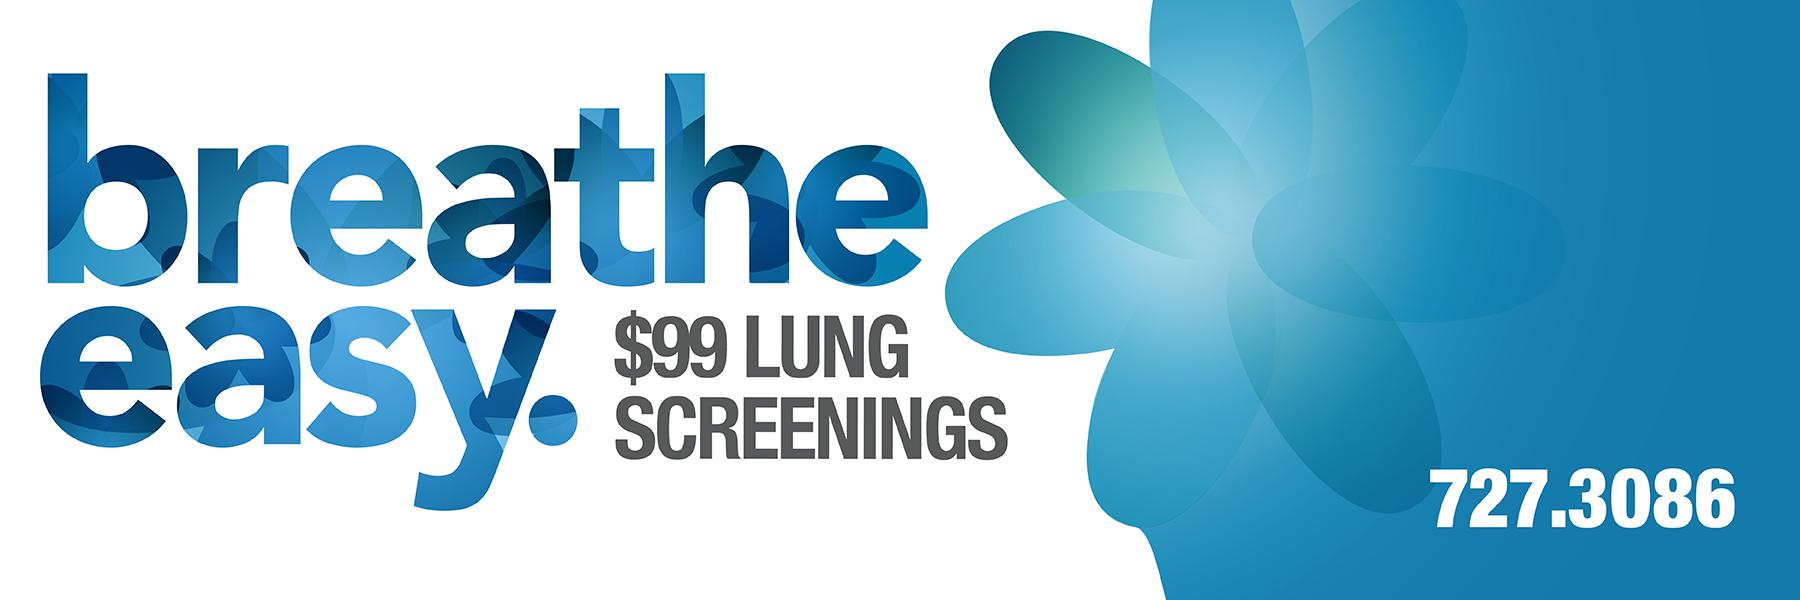 Breathe easy with a $99 lung cancer screening